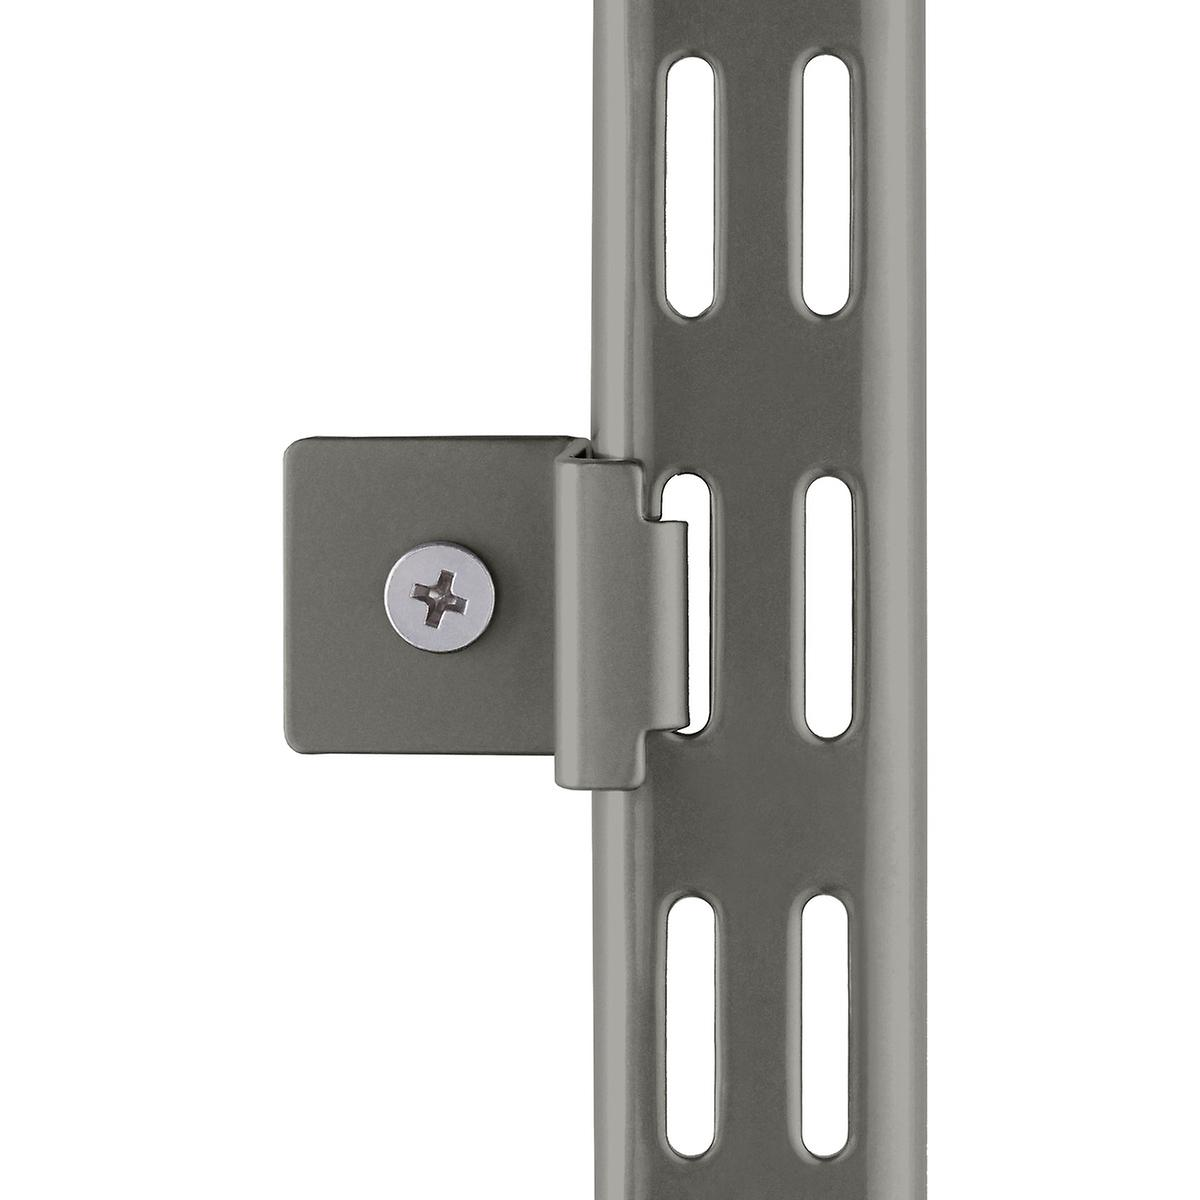 Graphite Elfa Hang Standard Wall Clips